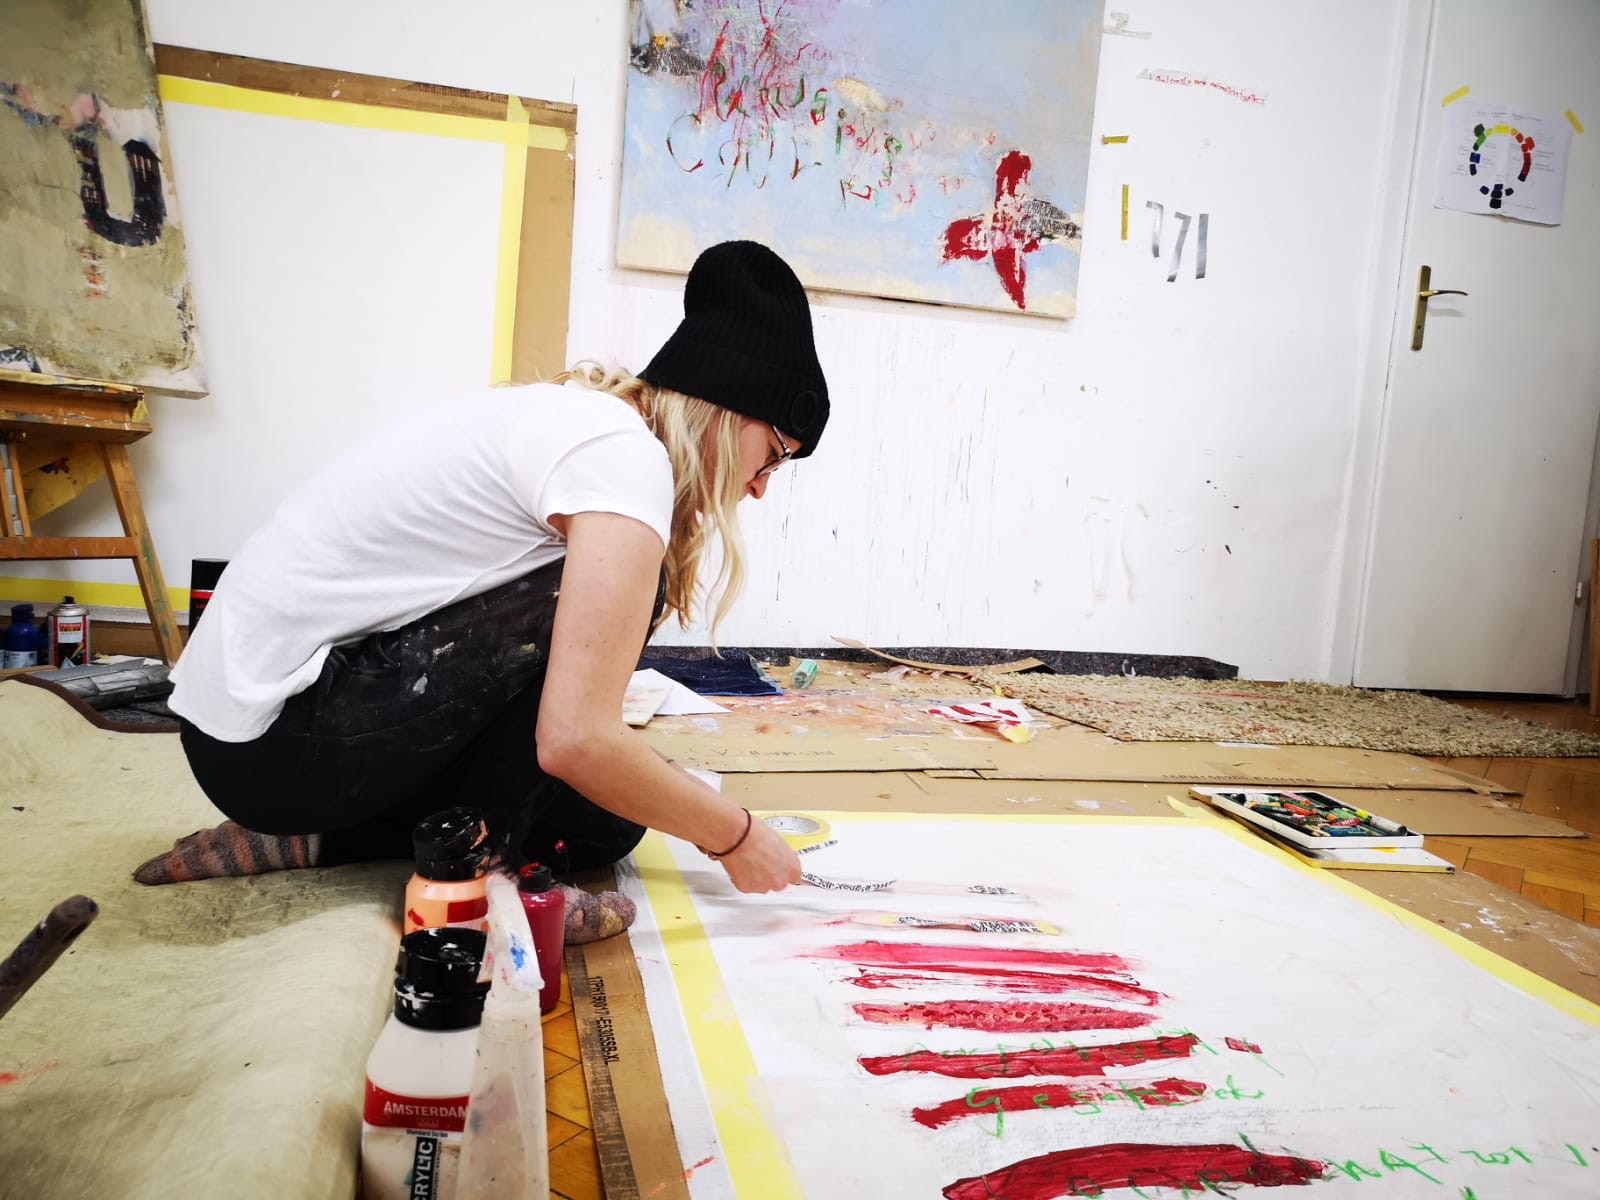 Atelier Einblick -  working place - creative place - My identity place ...